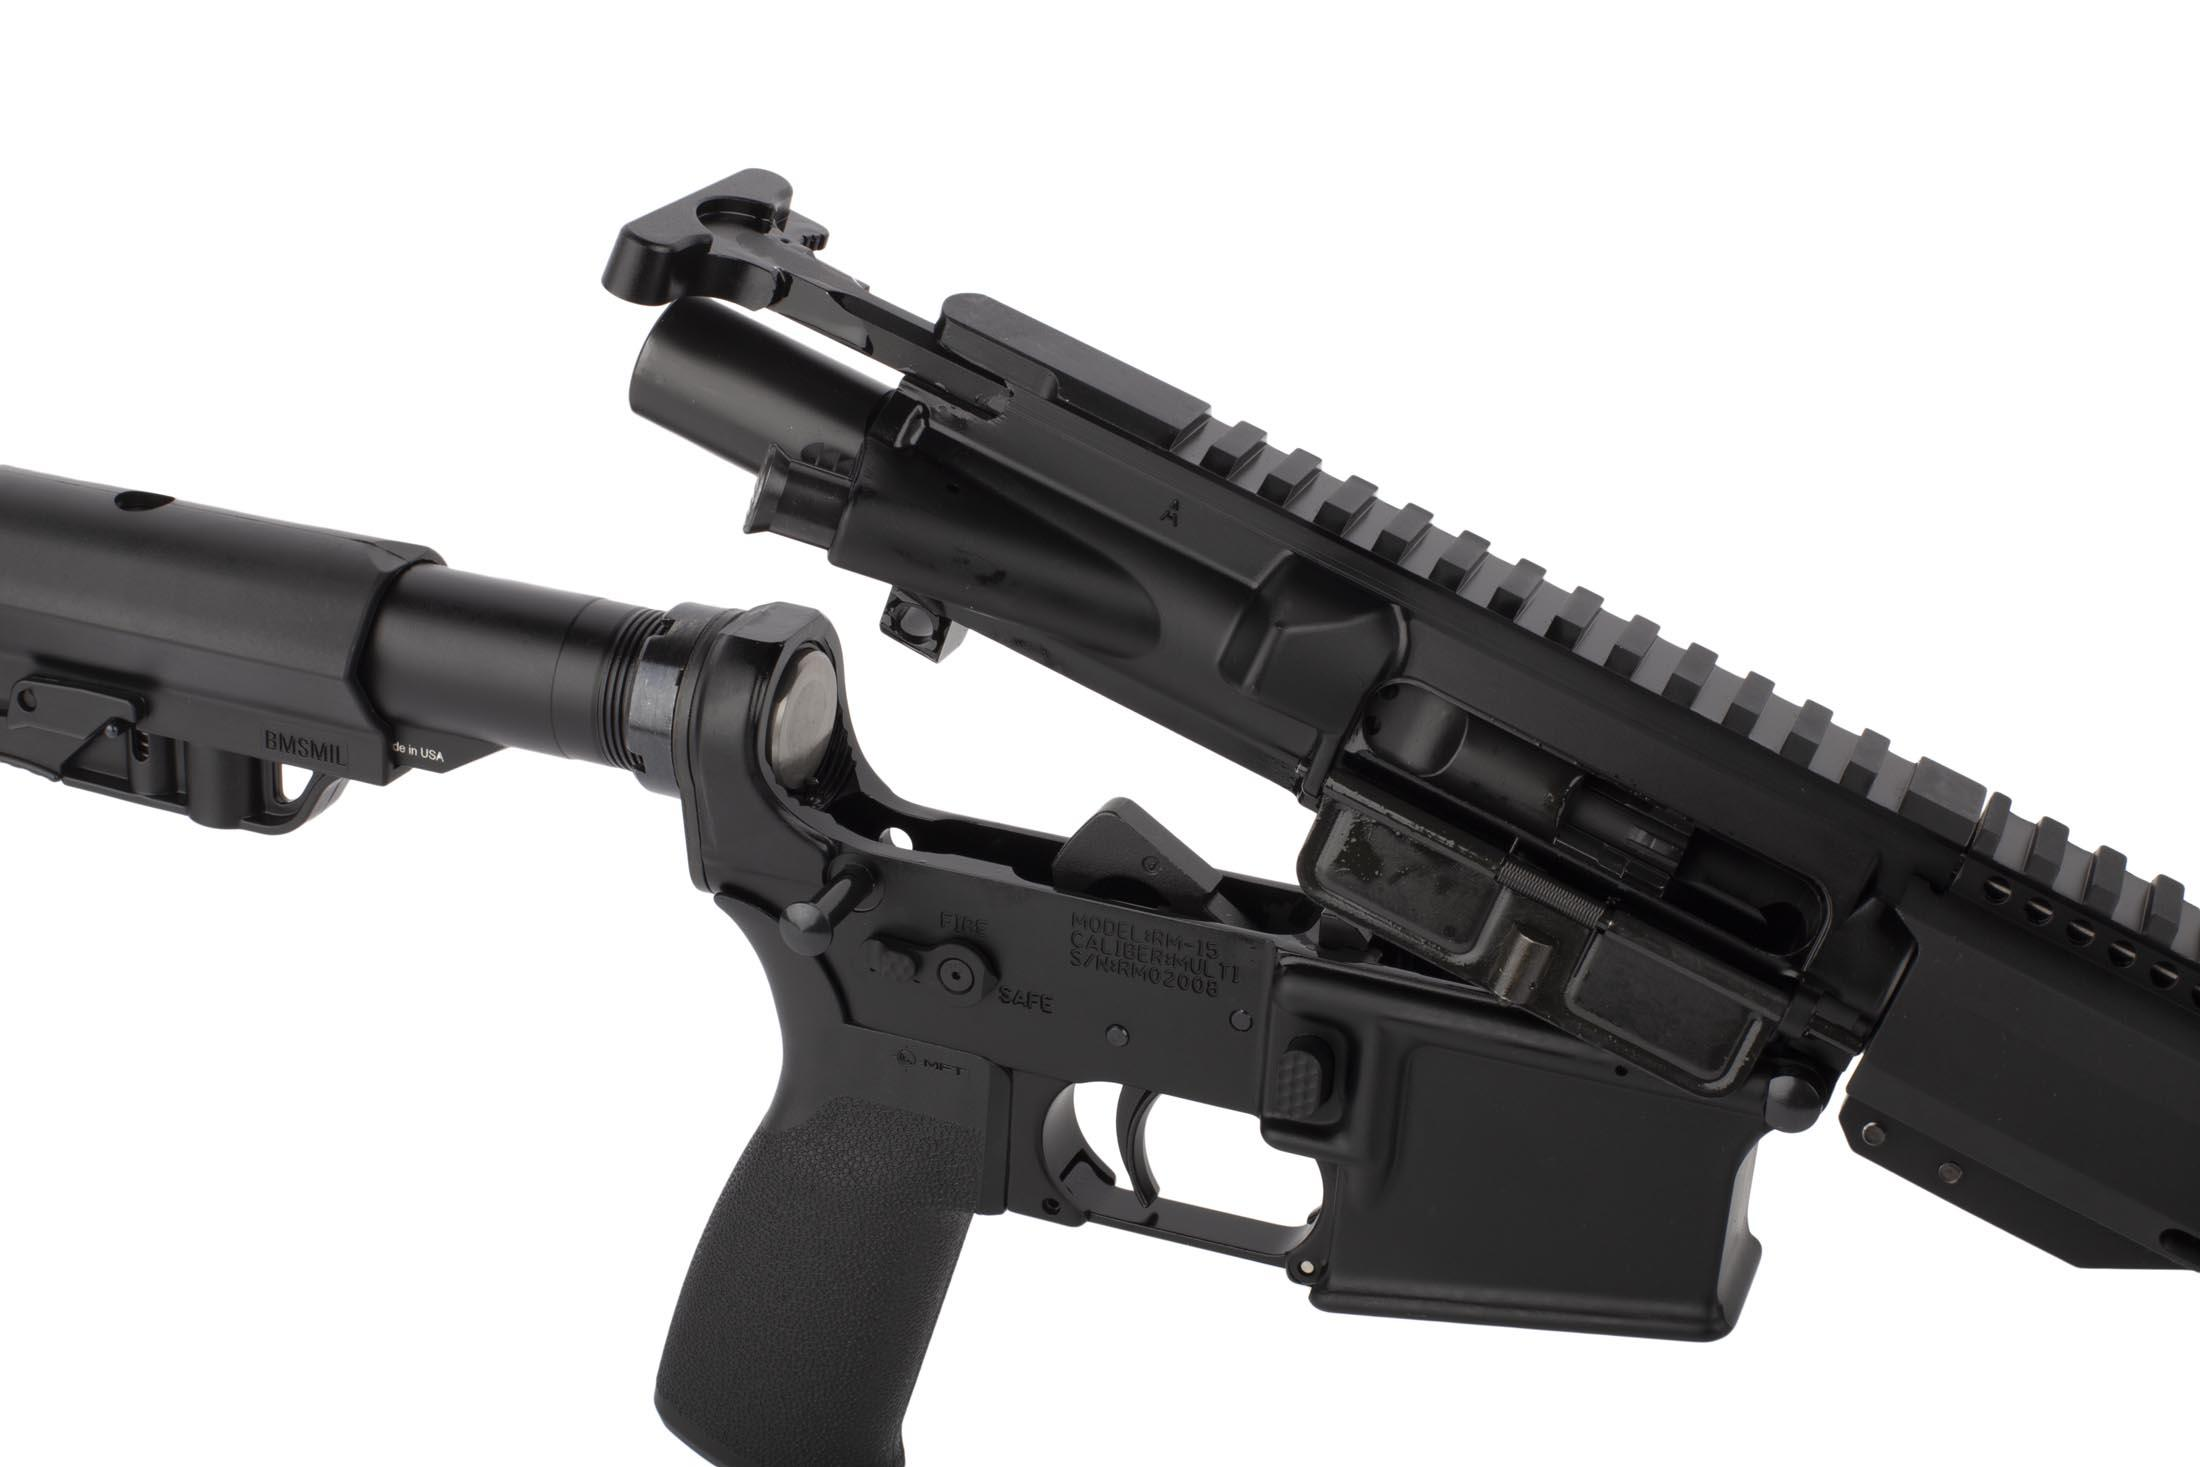 Radical 16in 7.62x39mm AR15 featuers an M16 cut bolt carrier group and standard MIL-SPEC charging handle